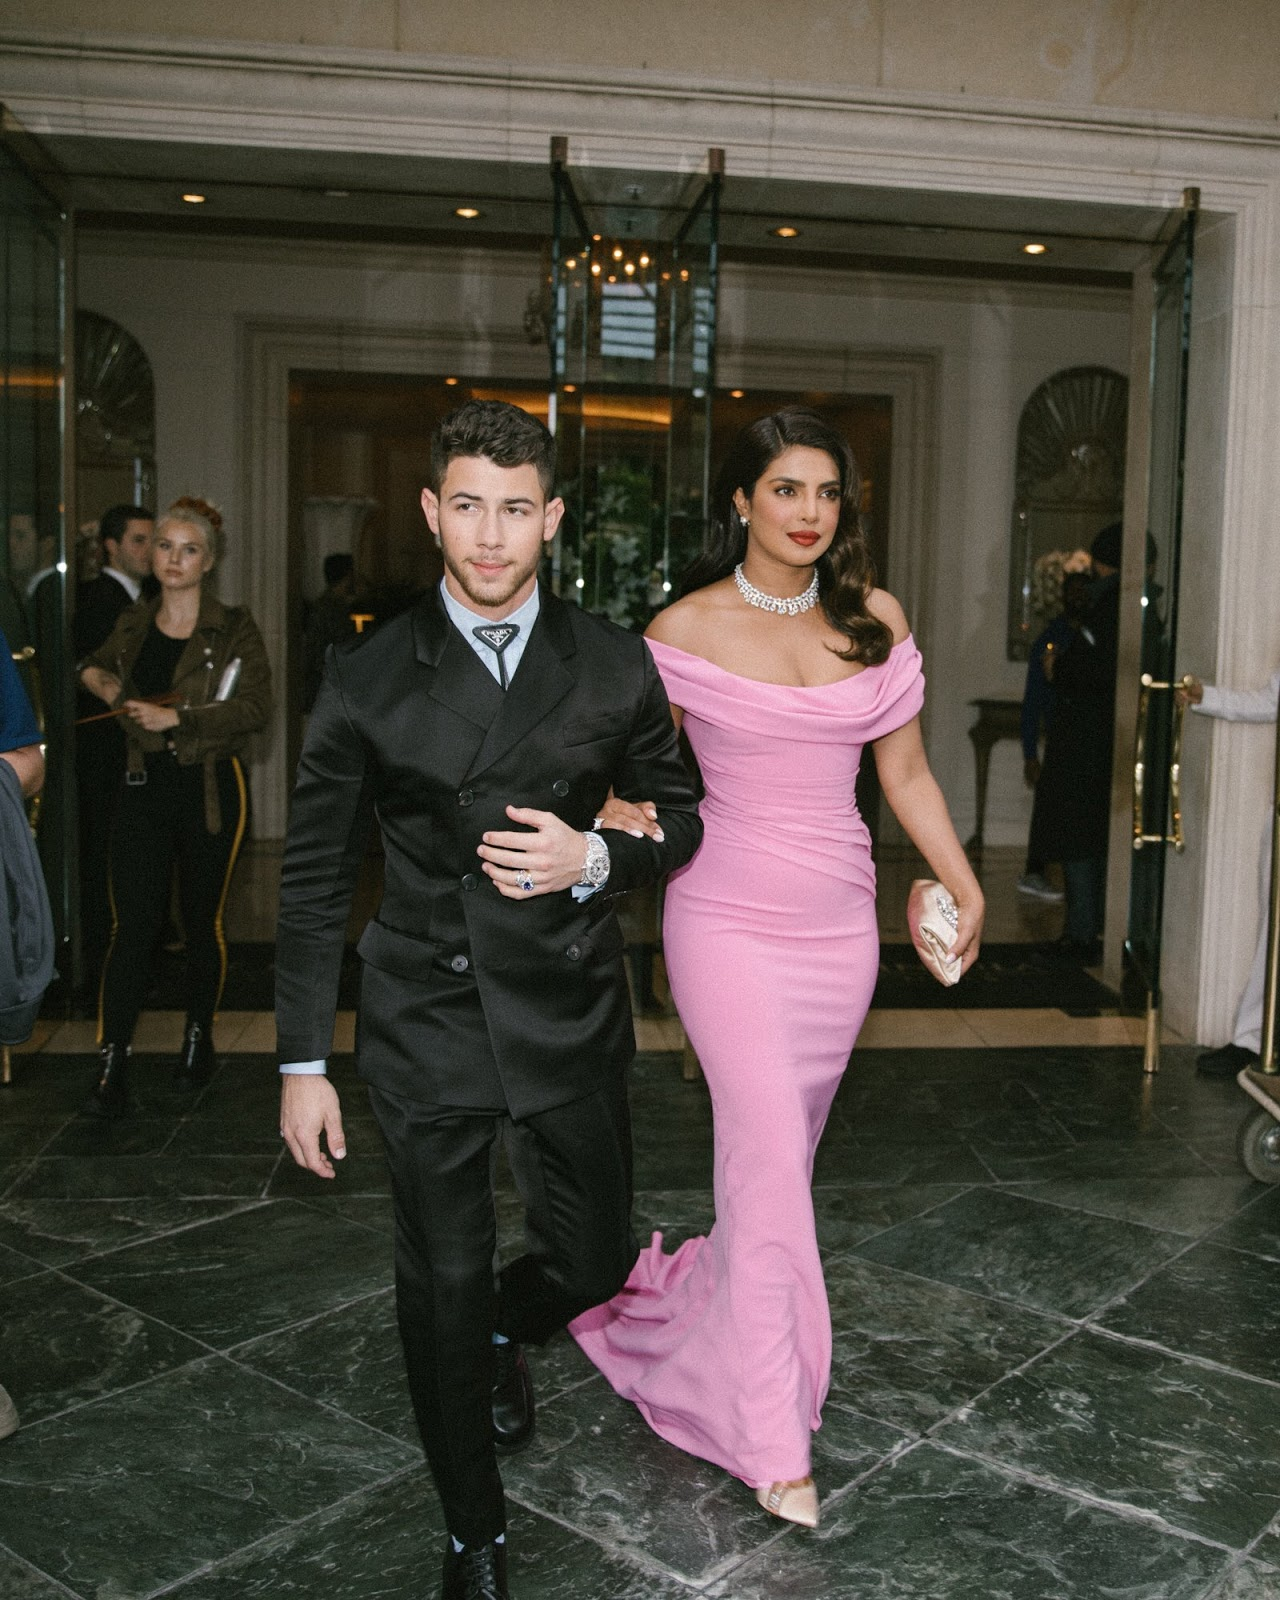 Priyanka Chopra Jonas in Christian Louboutin shoes and Bvlgari jewelry and Nick Jonas in Bvlgari jewelry